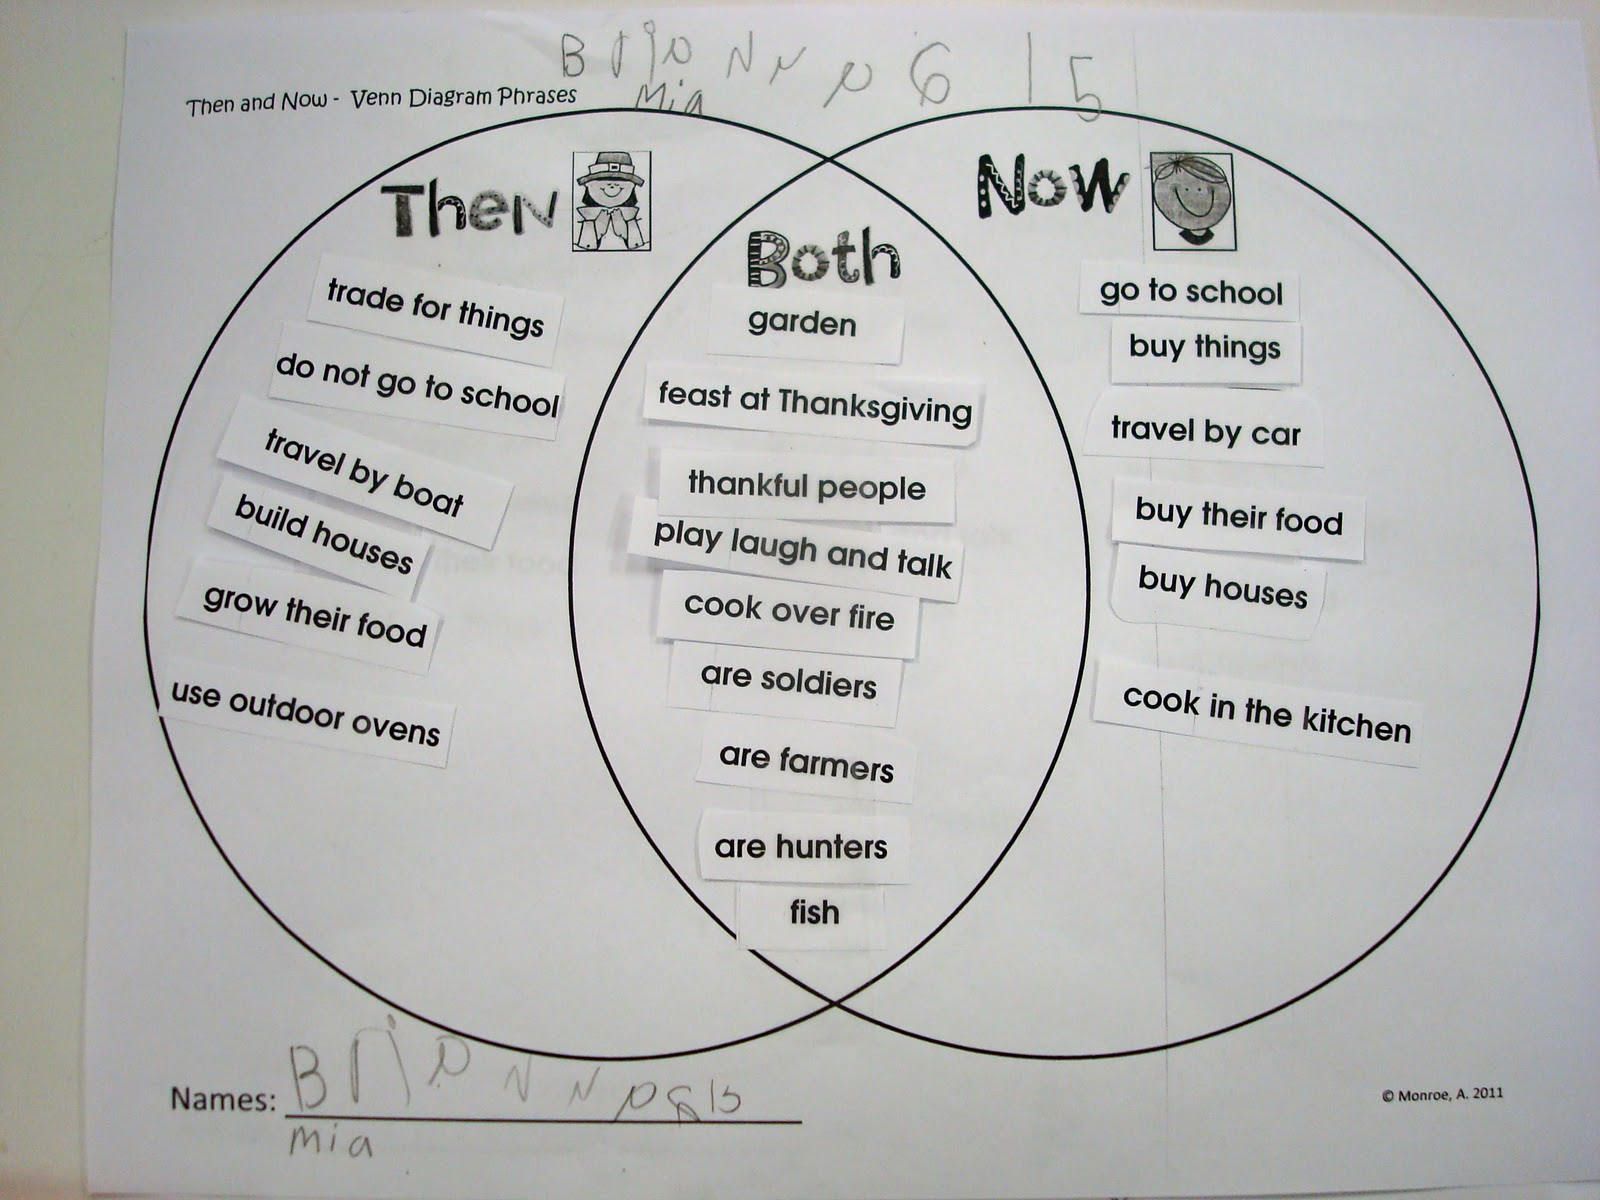 Pencils glue tying shoes pilgrim venn diagram one teams completed venn diagram ccuart Choice Image